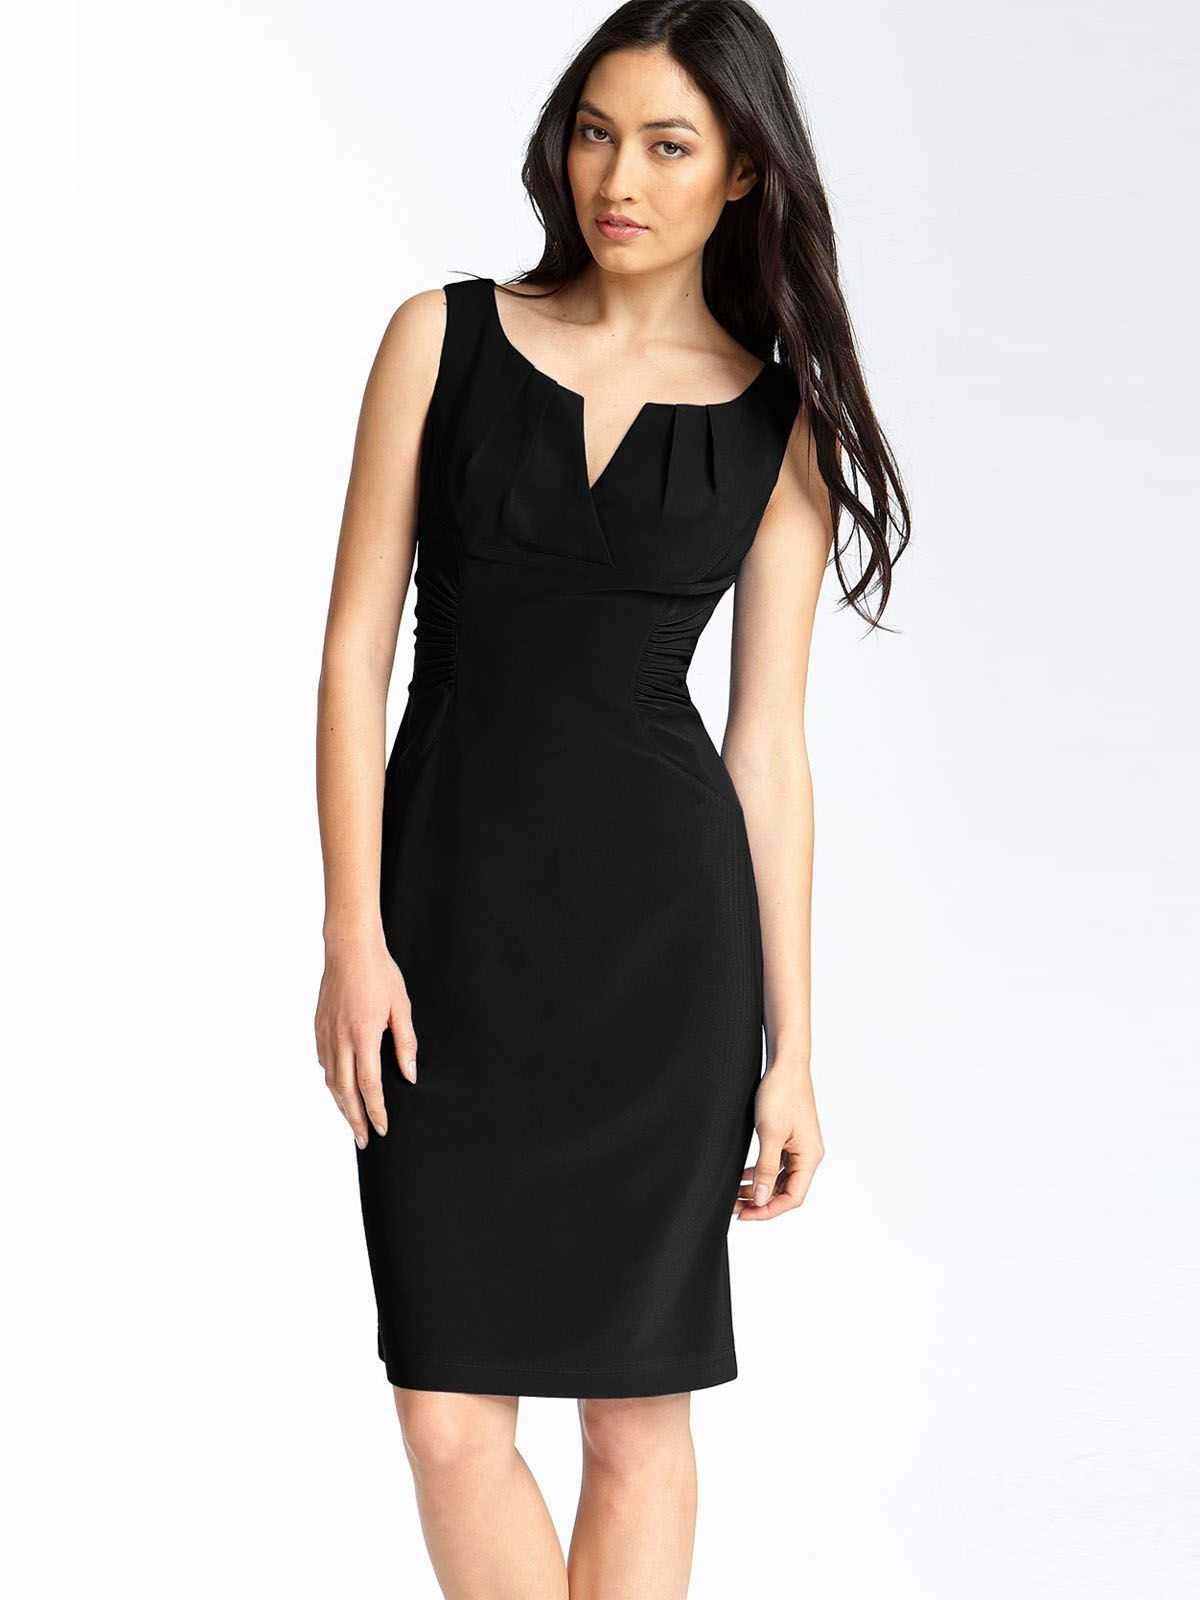 Best Little Black Dress For Your Shape | Simple cocktail dress ...